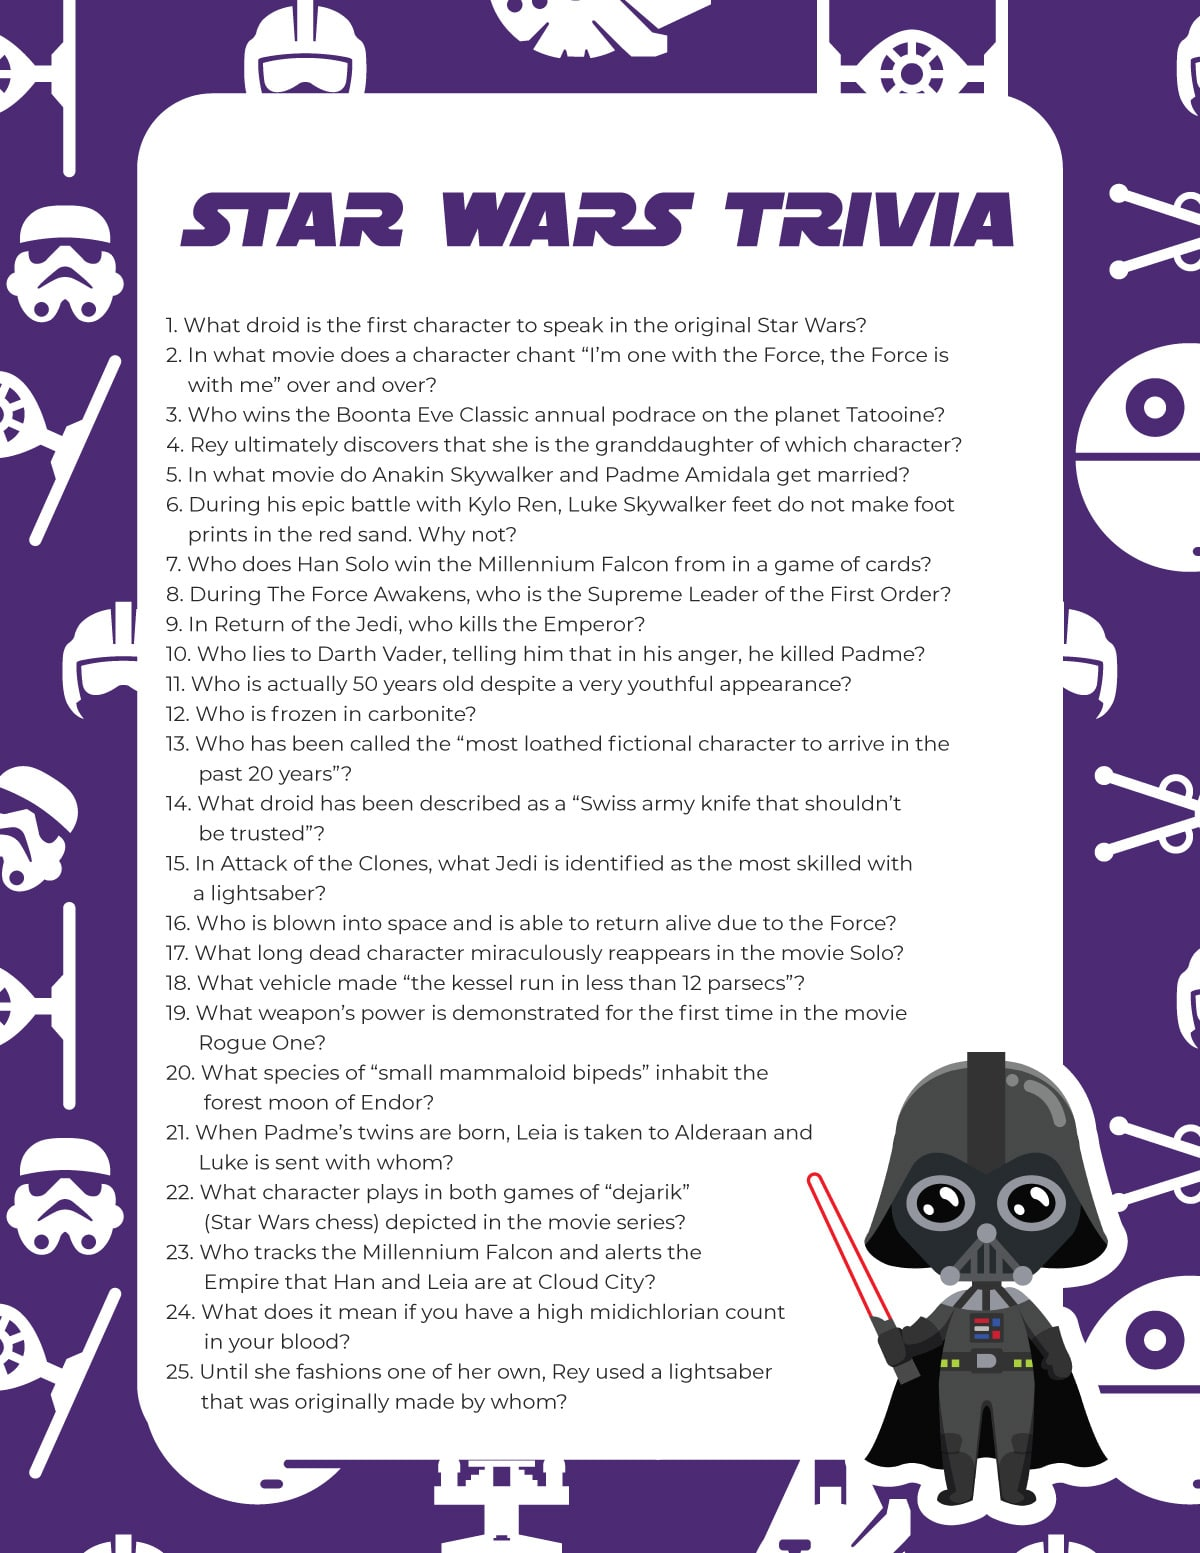 Star Wars trivia questions on a purple background